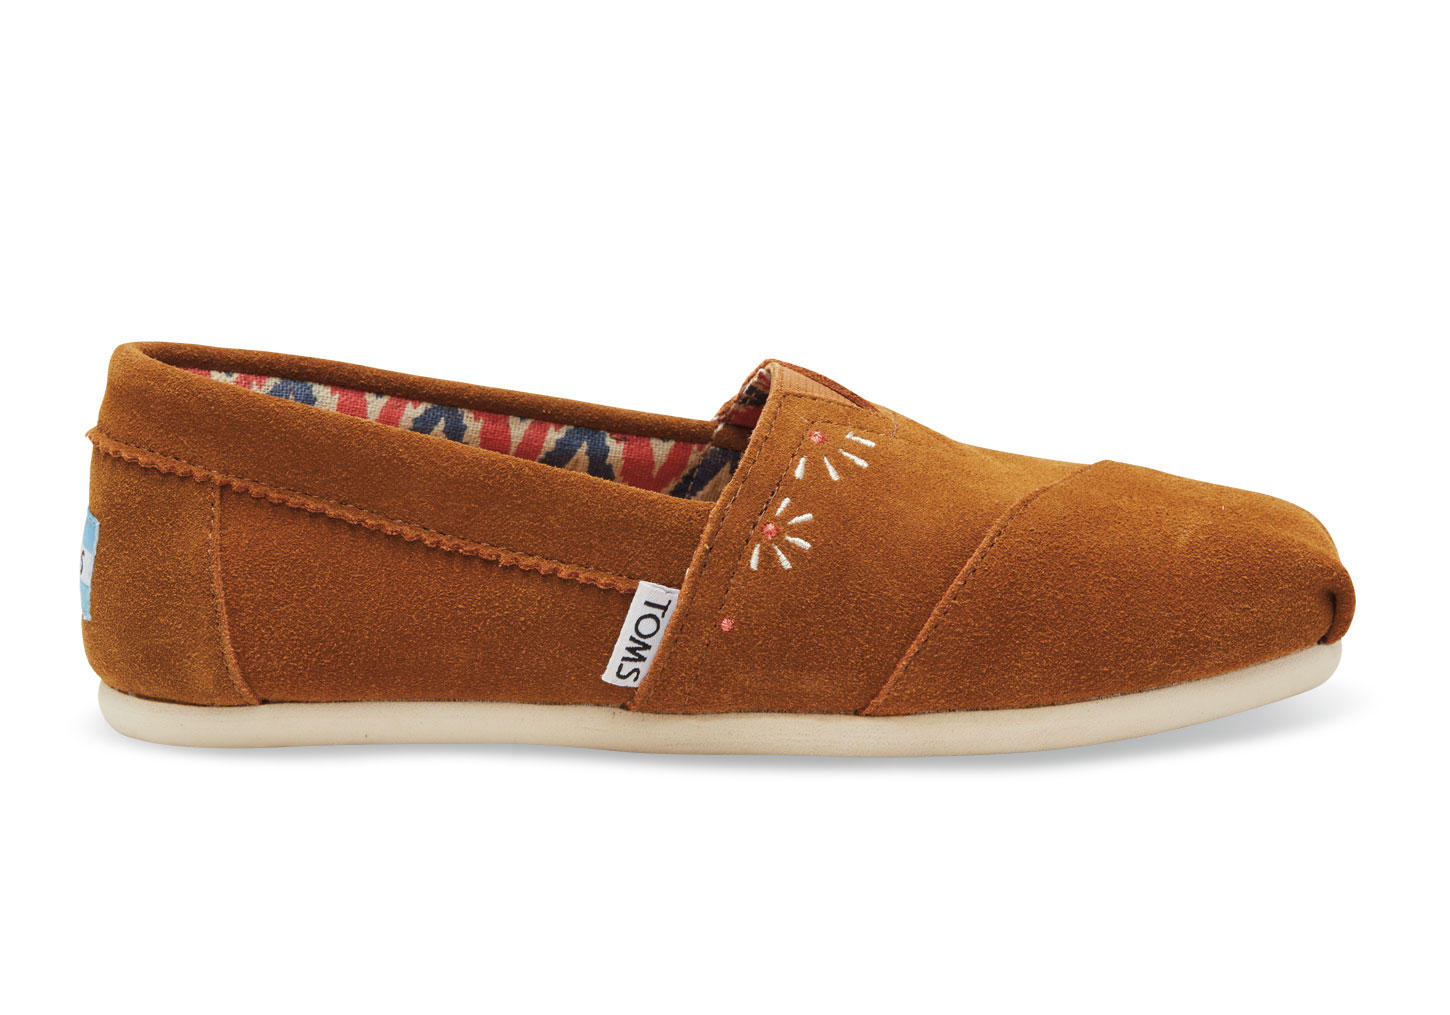 TOMS Brown Suede Embroidery Festival Women s Classics Brown 4012c1c2bafd